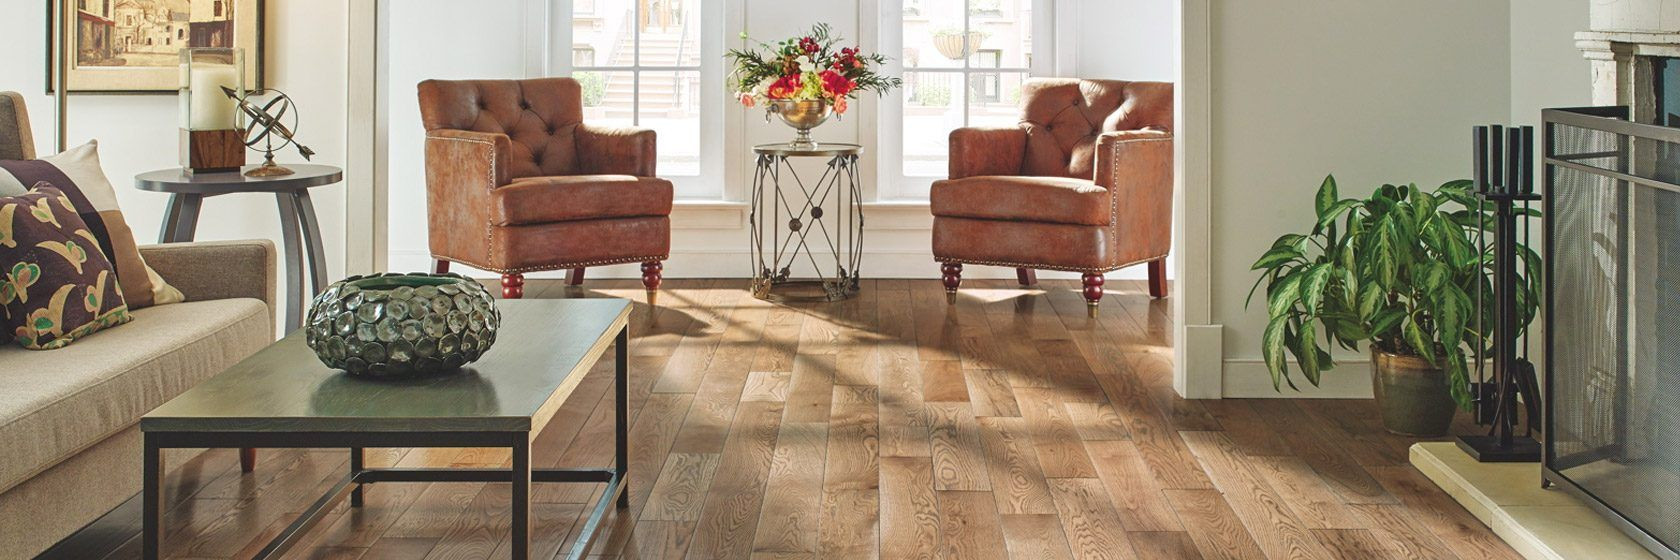 maple hardwood flooring vs oak of oak solid hardwood hay ground saktb39l4hgw is part of the for oak solid hardwood hay ground saktb39l4hgw is part of the timberbrushed collection from hardwood view specs order a sample